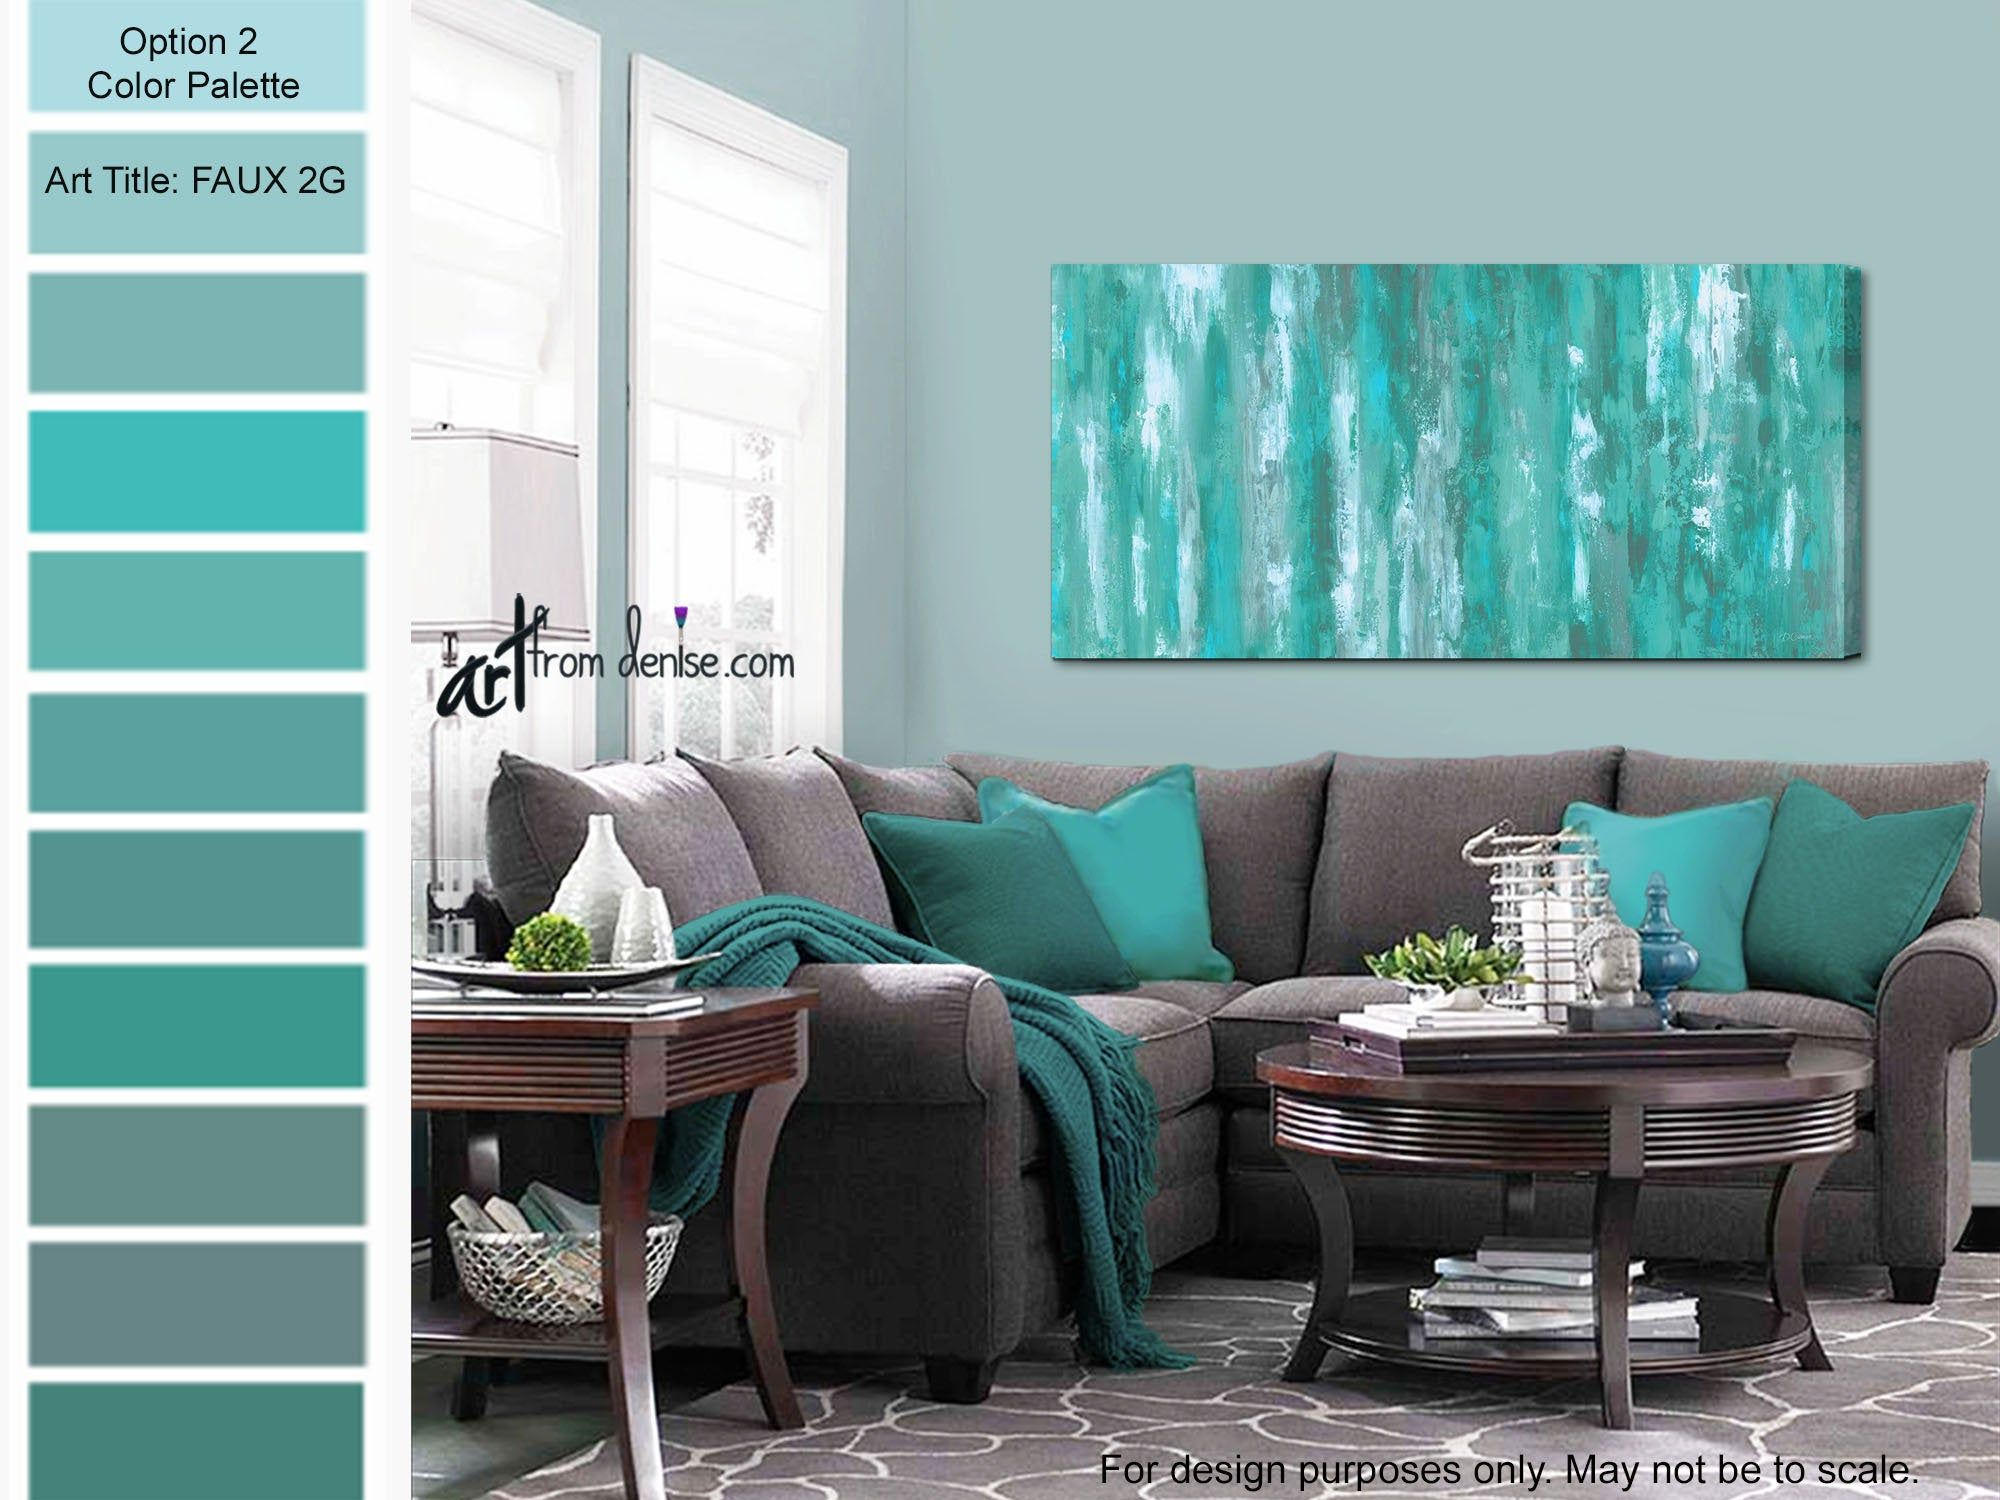 Gray Green Teal Wall Art Canvas Abstract Bedroom Wall Decor Etsy In 2020 Living Room Turquoise Navy Blue Living Room Blue Walls Living Room,Simple South Indian Baby Shower Decorations